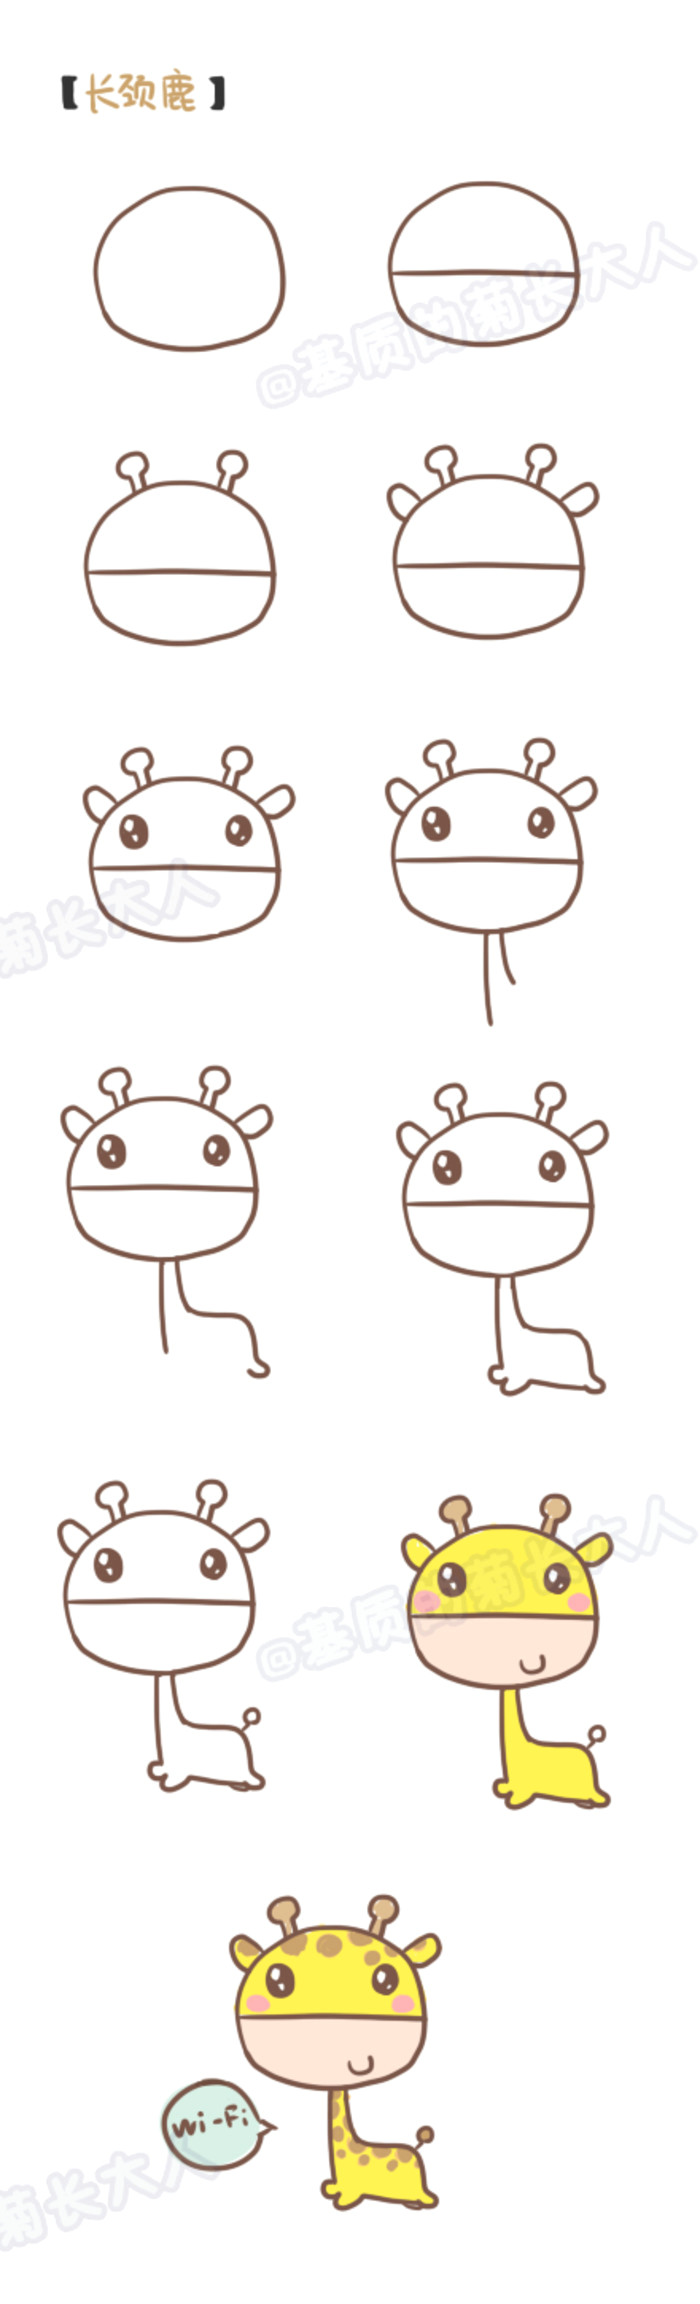 how to draw a giraffe daisy grew up in person from the matrix